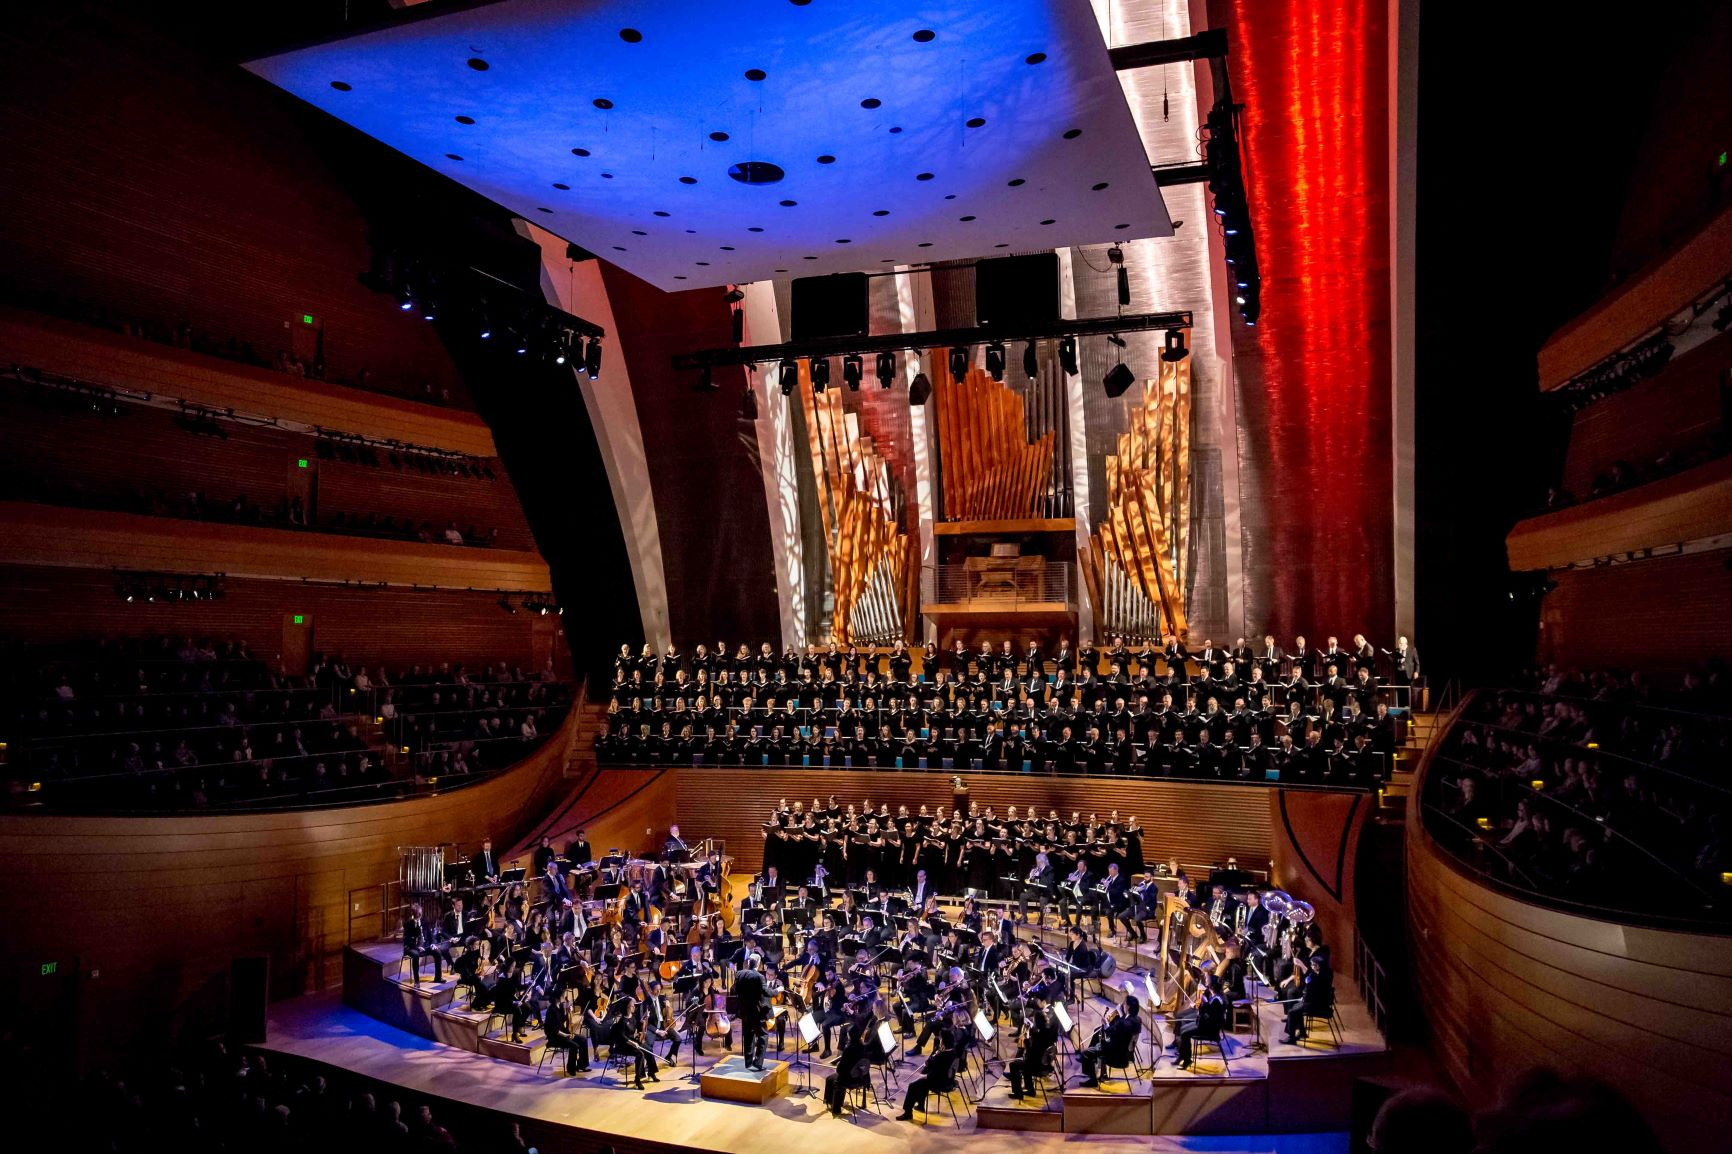 Kansas City Symphony in Helzberg Hall - blue, white and red lighting